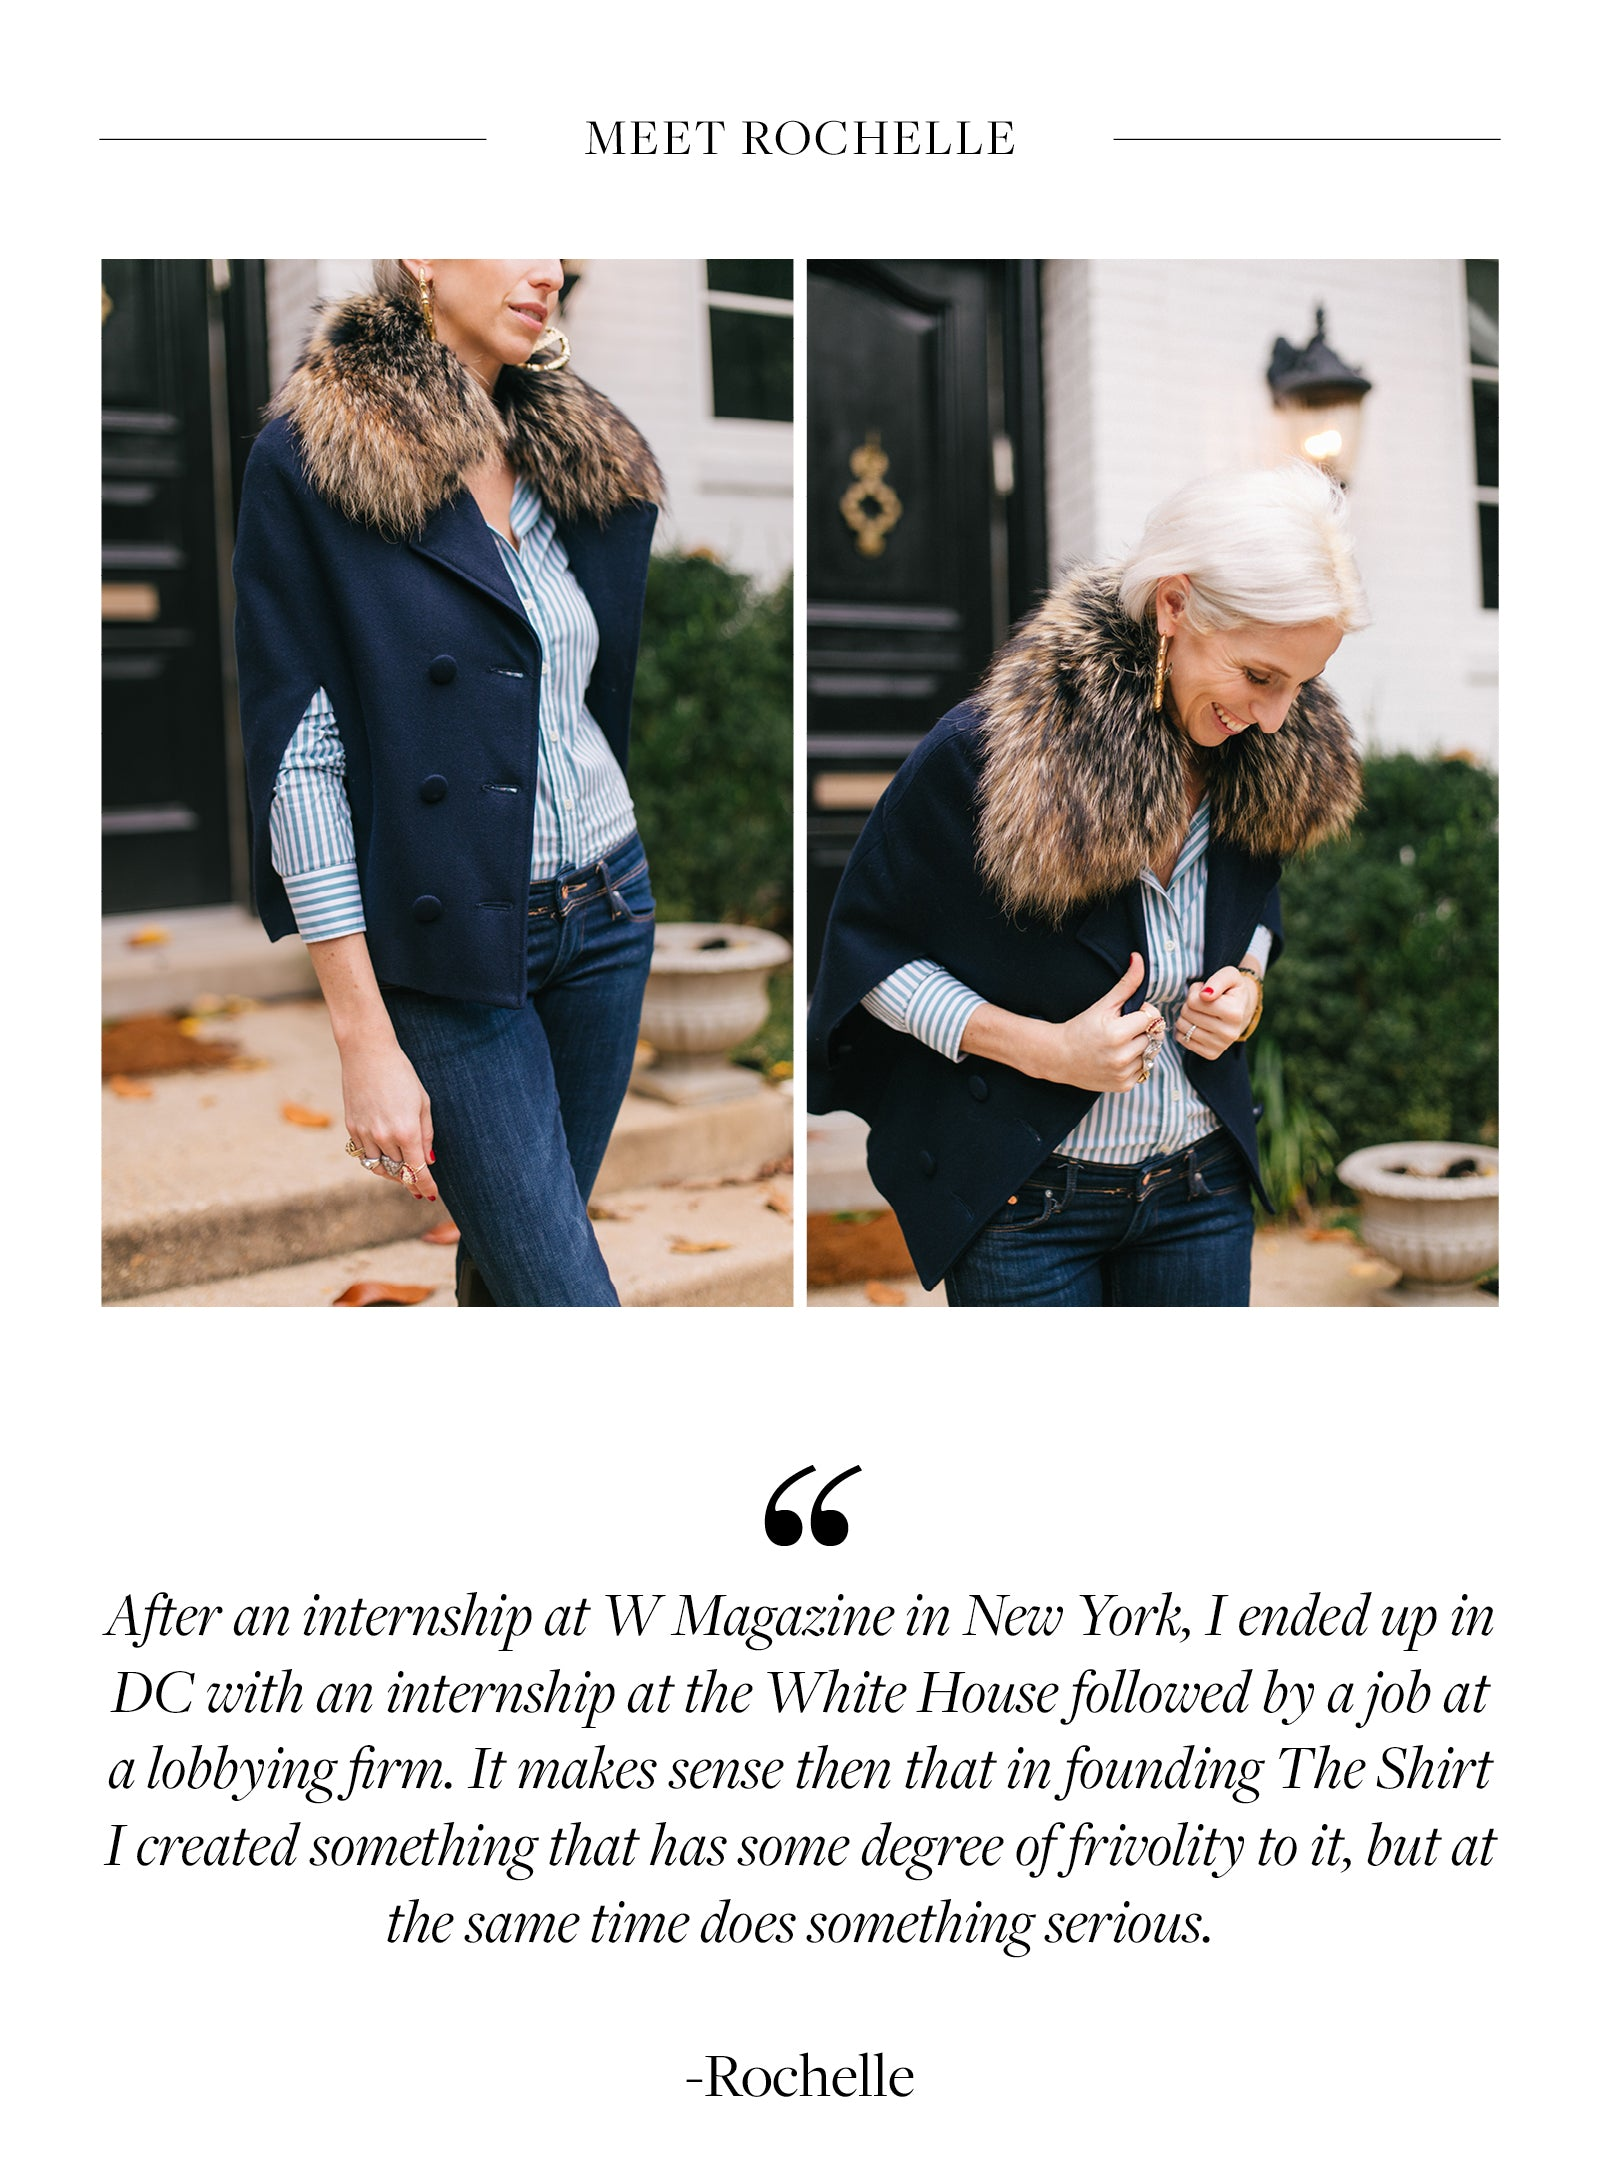 After an internship at W Magazine in New York, I ended up in DC with an internship at the White House followed by a job at a lobbying firm. It makes sense then that in founding The Shirt I created something that has some degree of frivolity to it, but at the same time does something serious.  -Rochelle